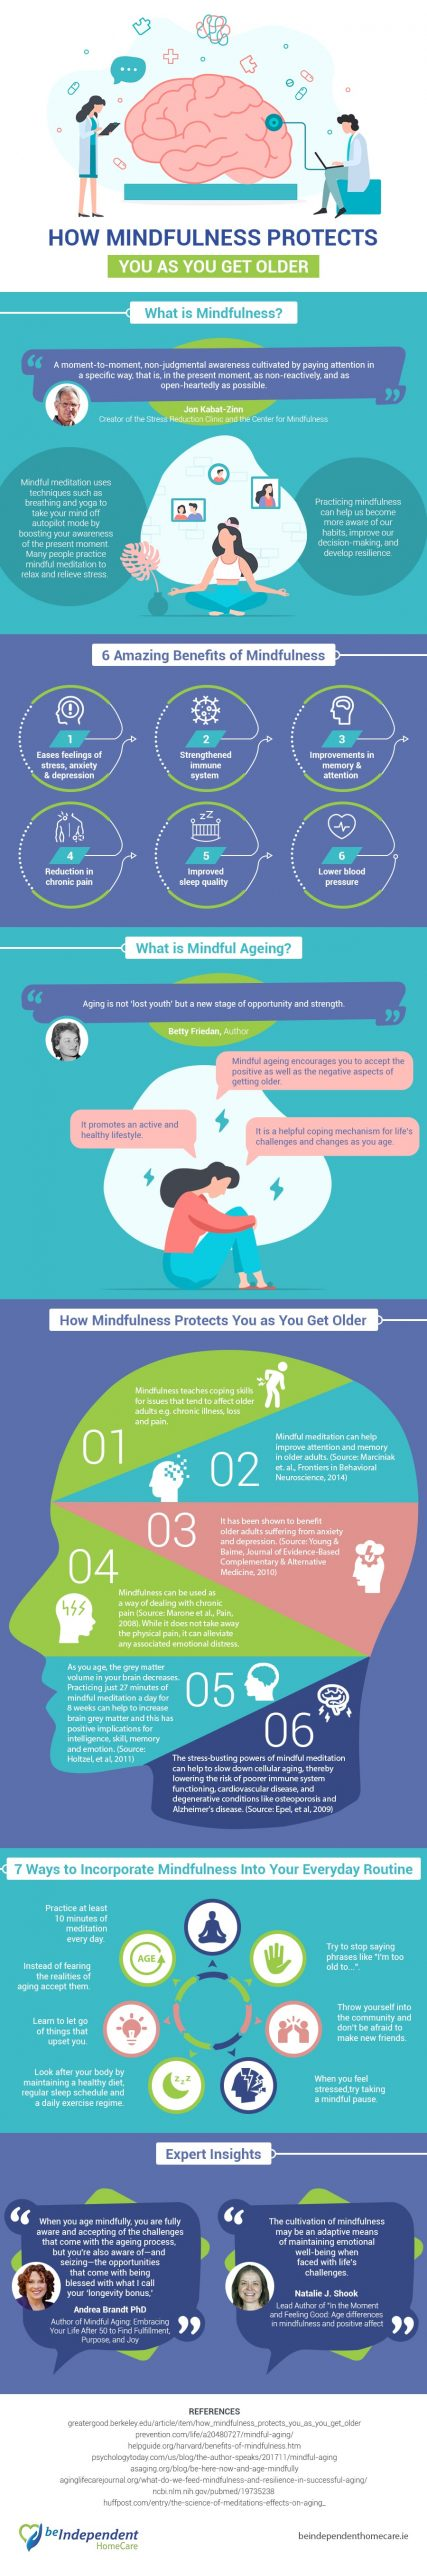 How Mindfulness Protects You as You Get Older